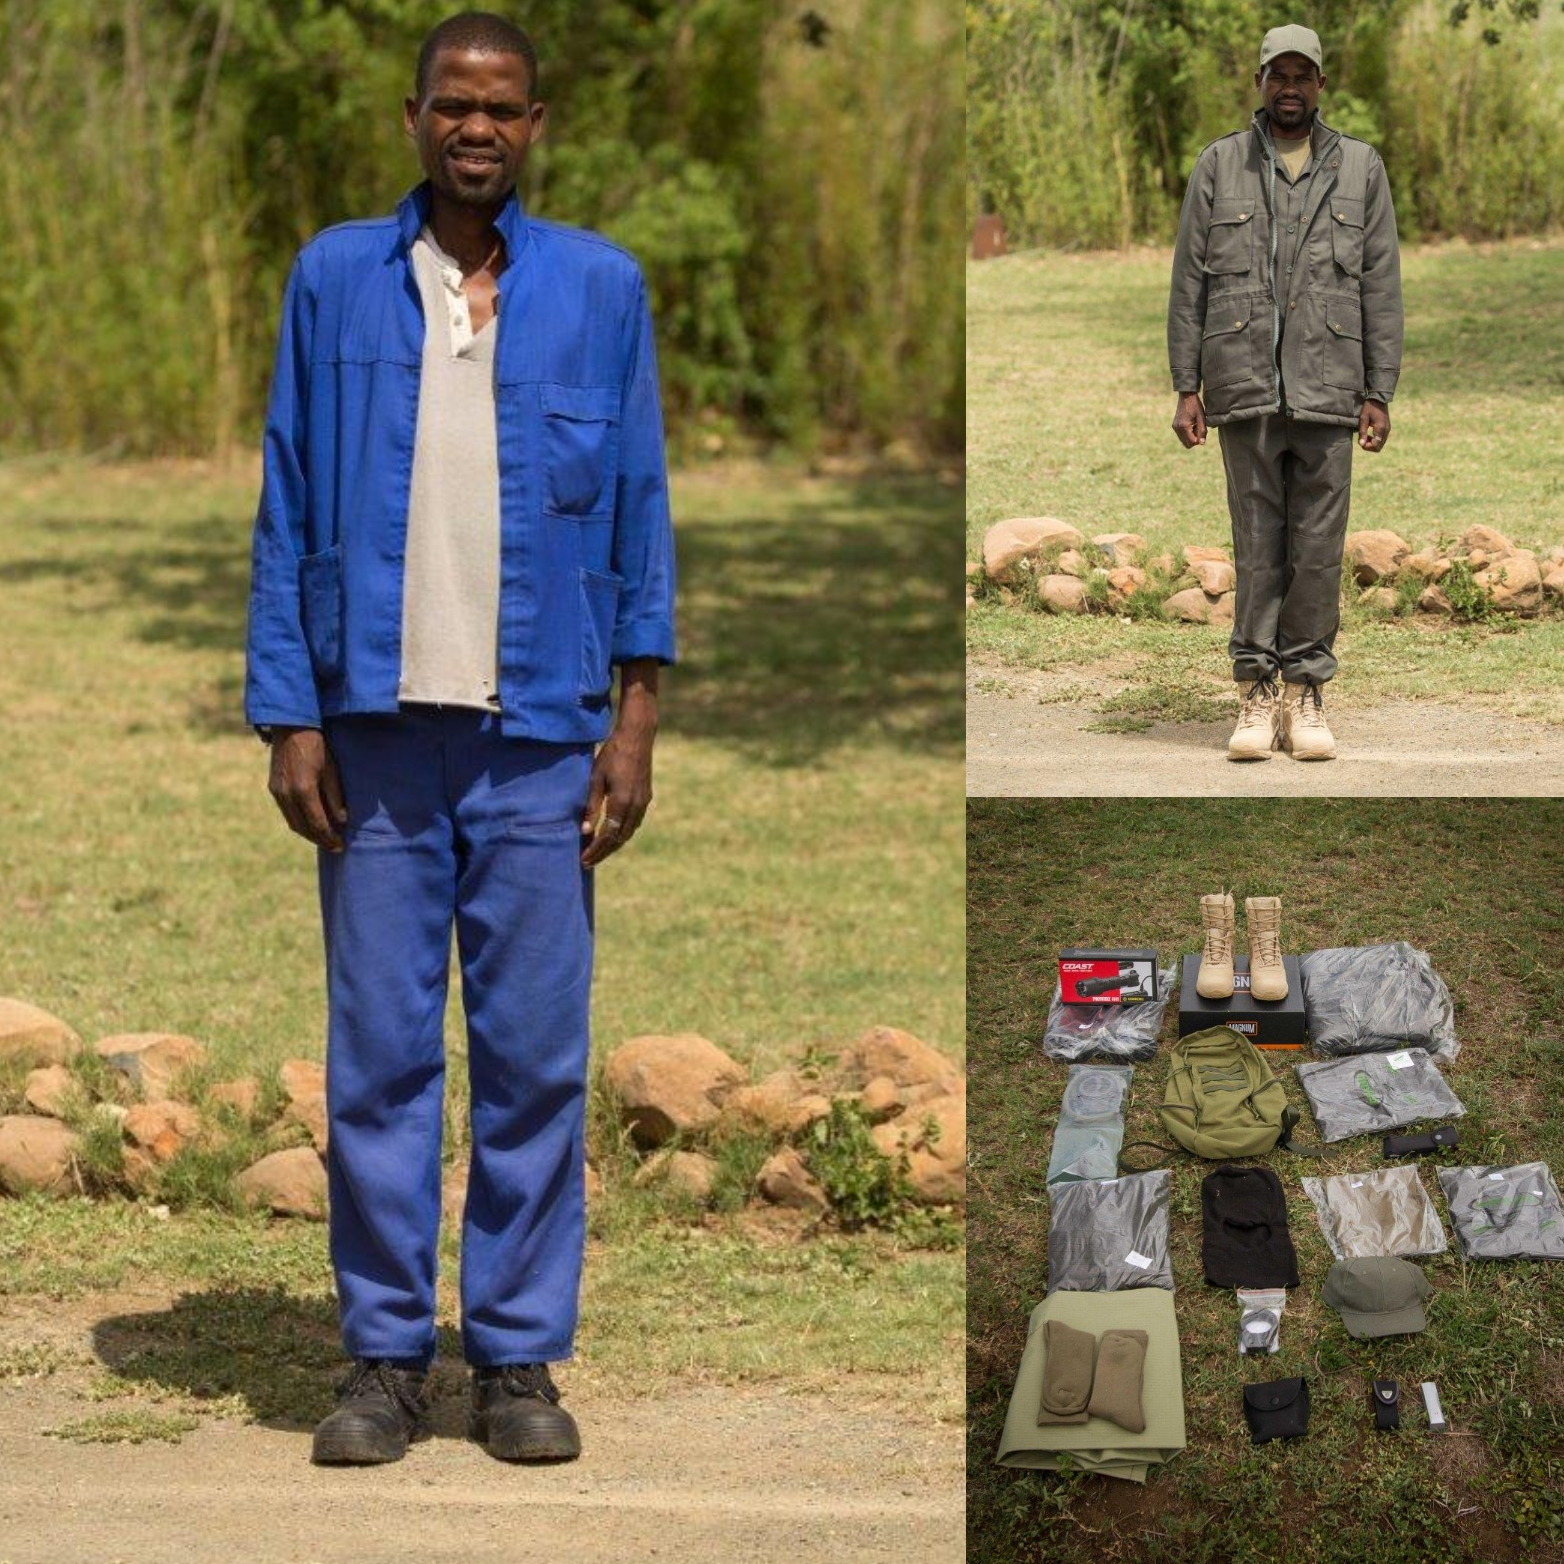 The basic equipment and uniform required for one ranger, which costs around $1000. Credit: Game Rangers Association Of Africa